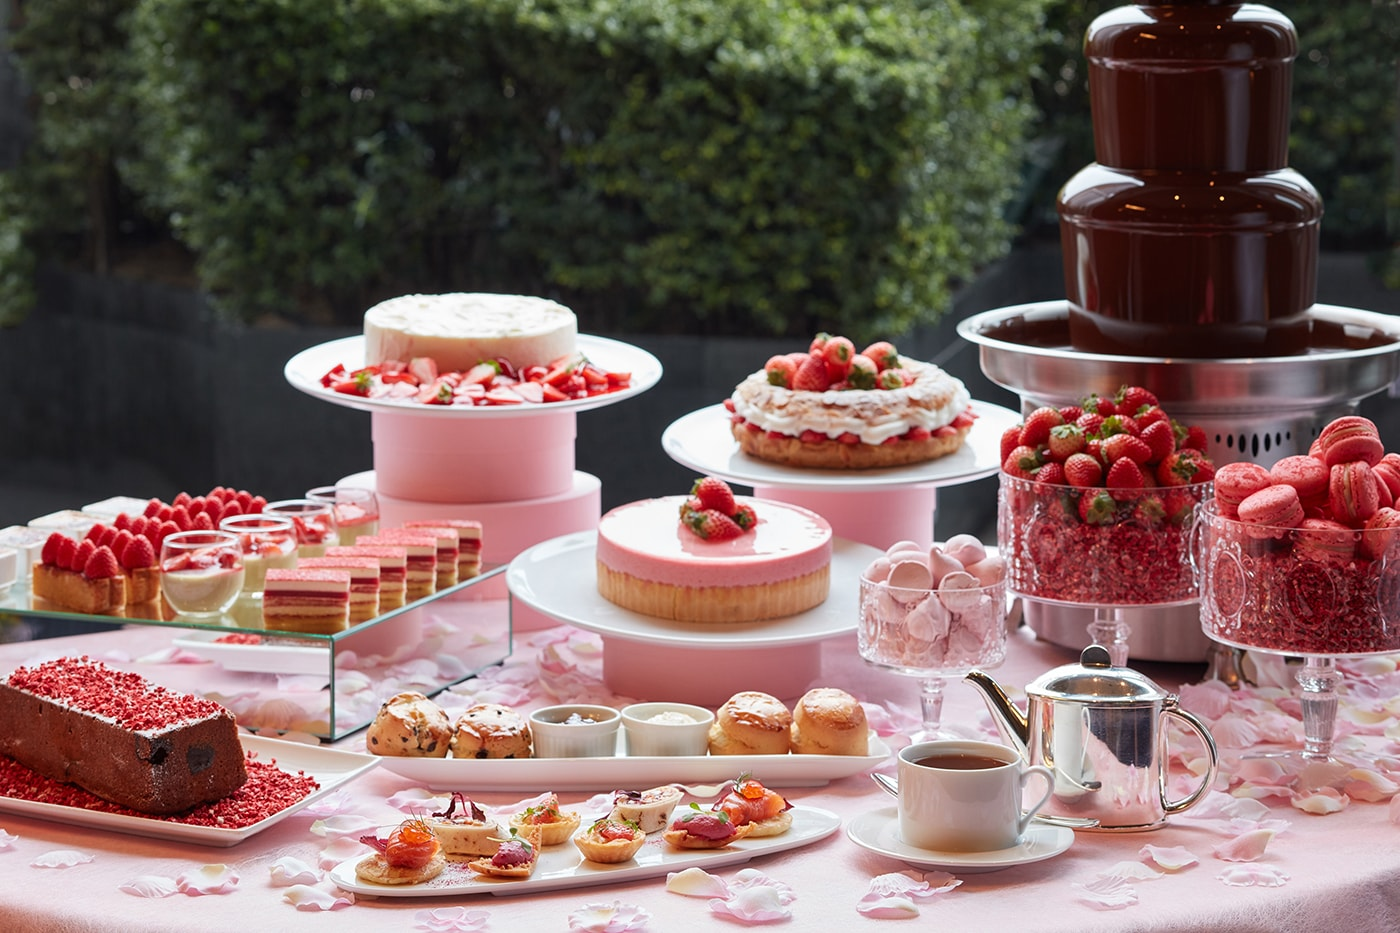 The French Kitchen Strawberry Afternoon Tea